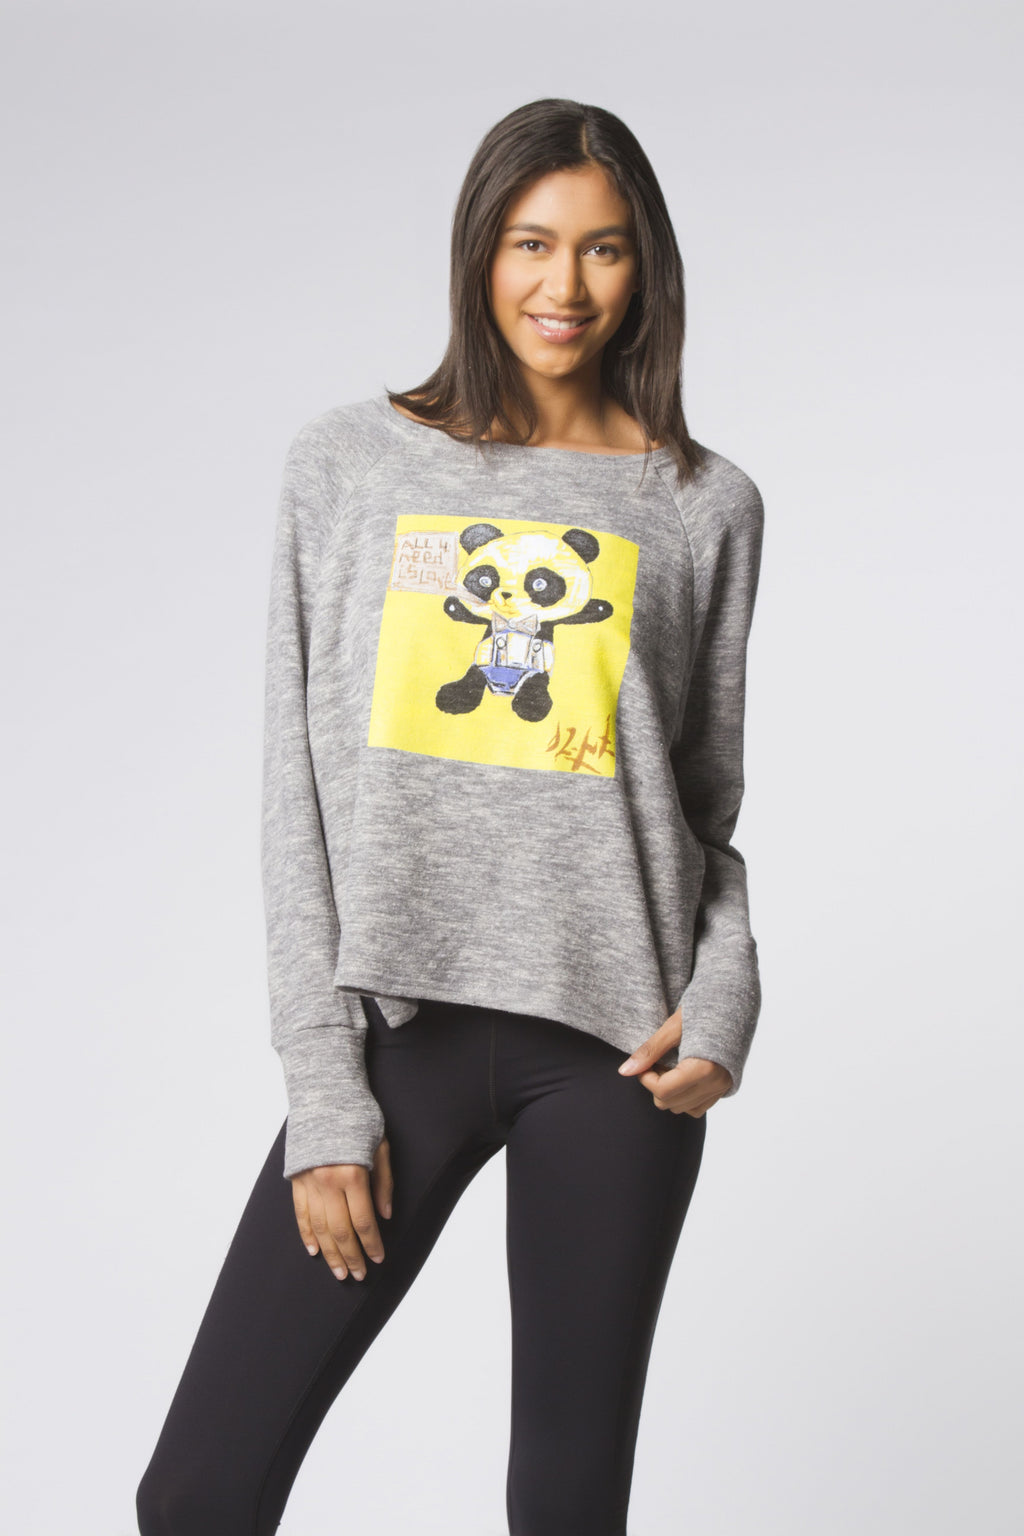 Frost + Yellow Graffiti Panda Sweatshirt